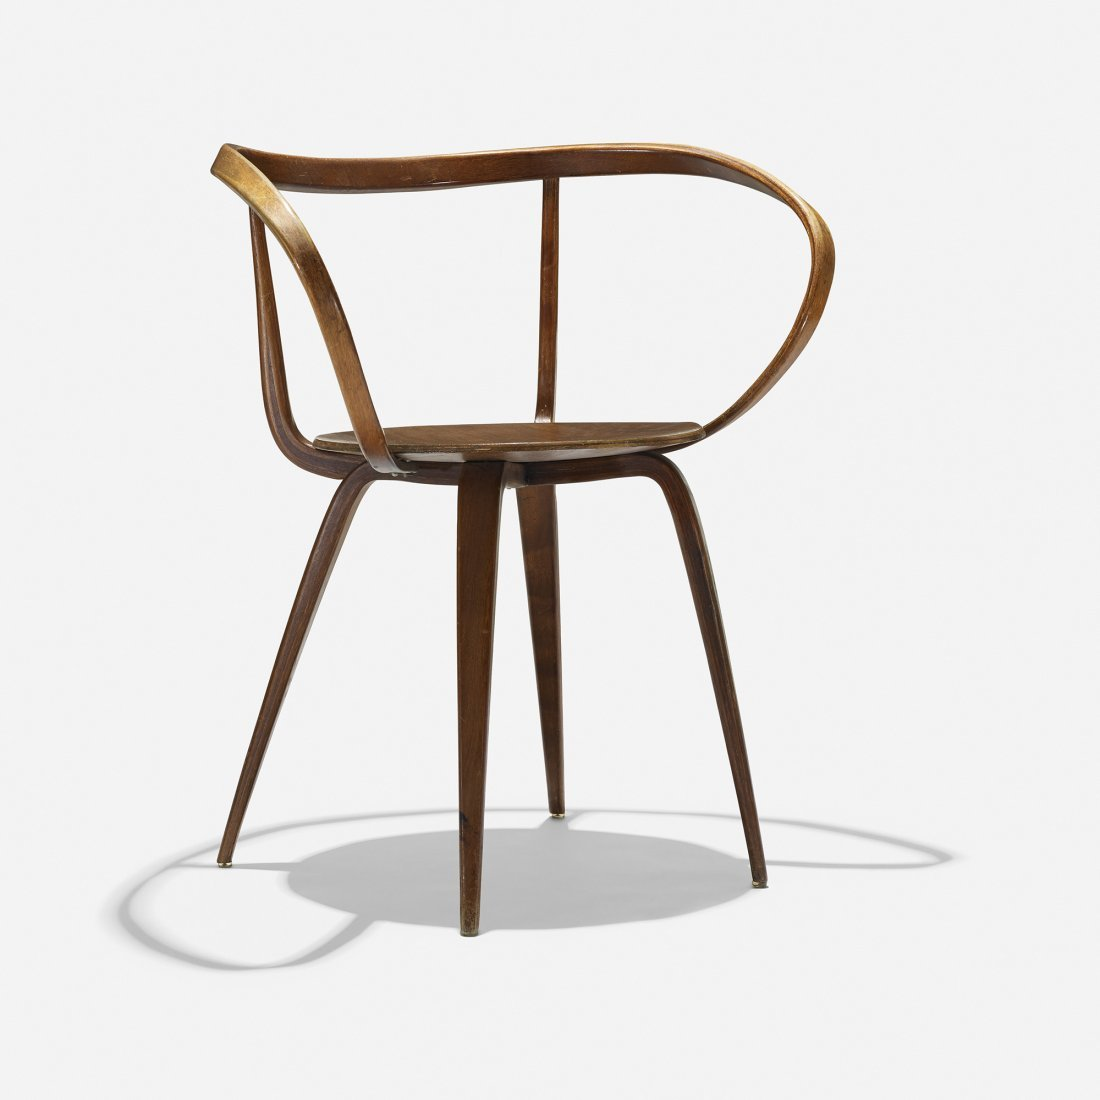 George Nelson & Associates Pretzel chair